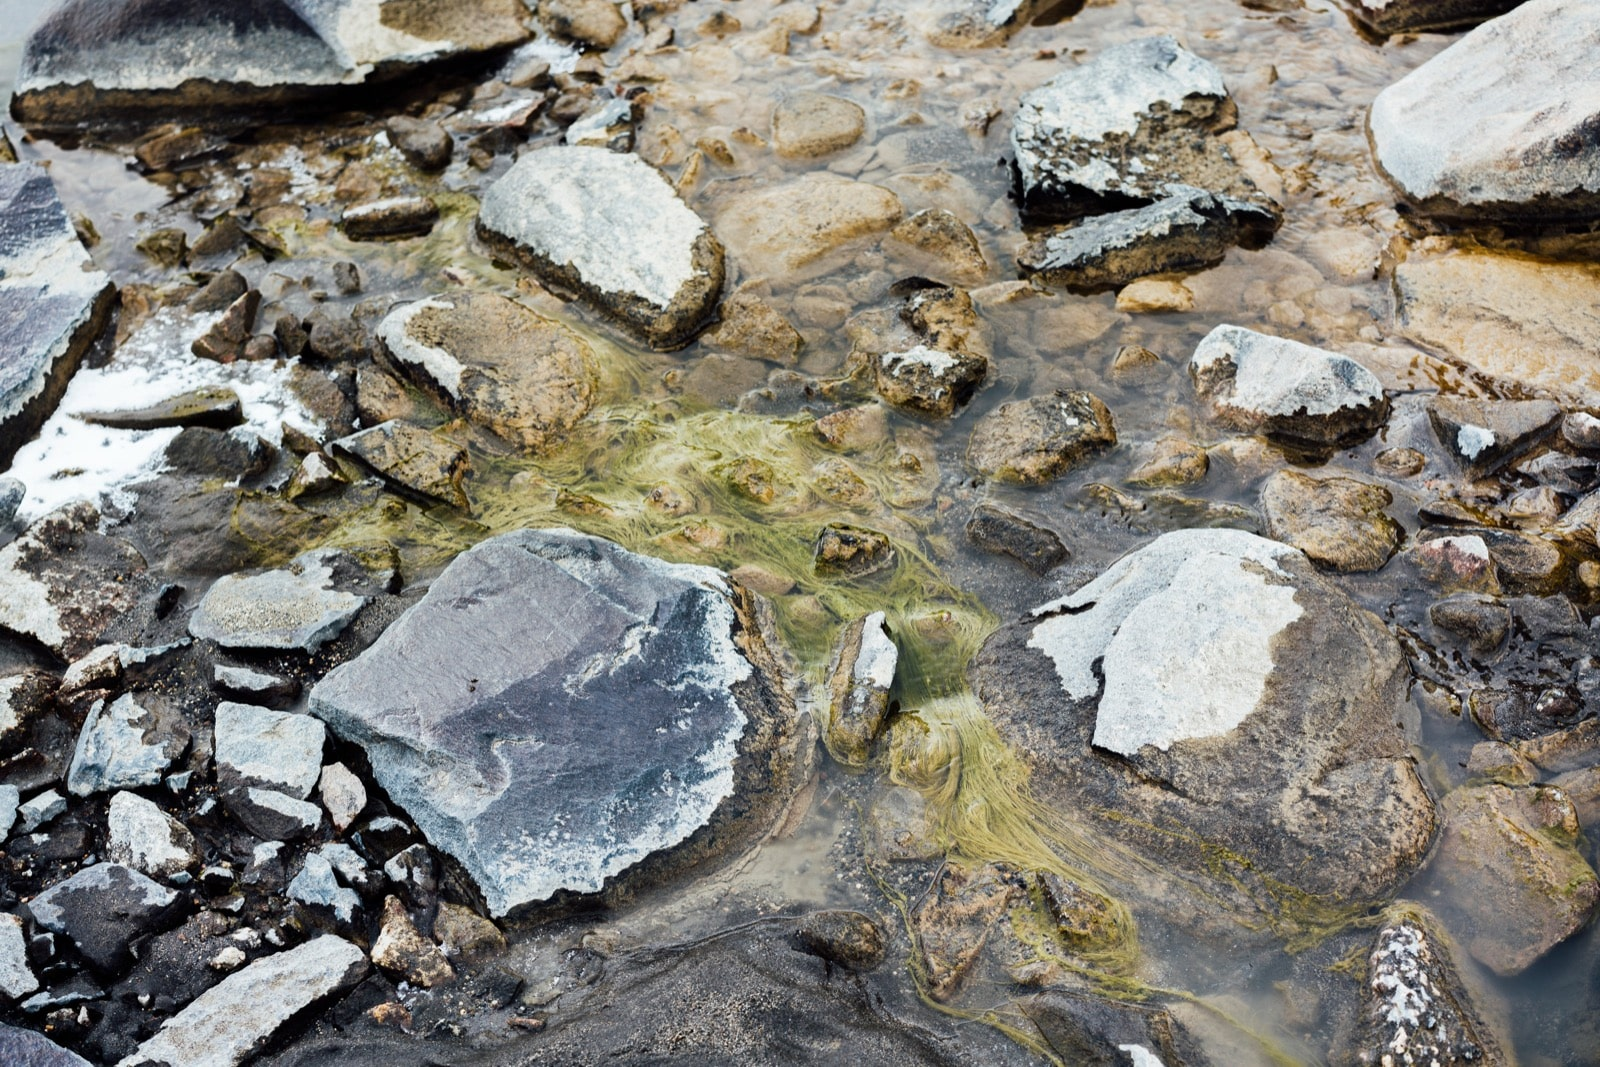 green filamentous algae piled up in shallow water over rocks and some frost